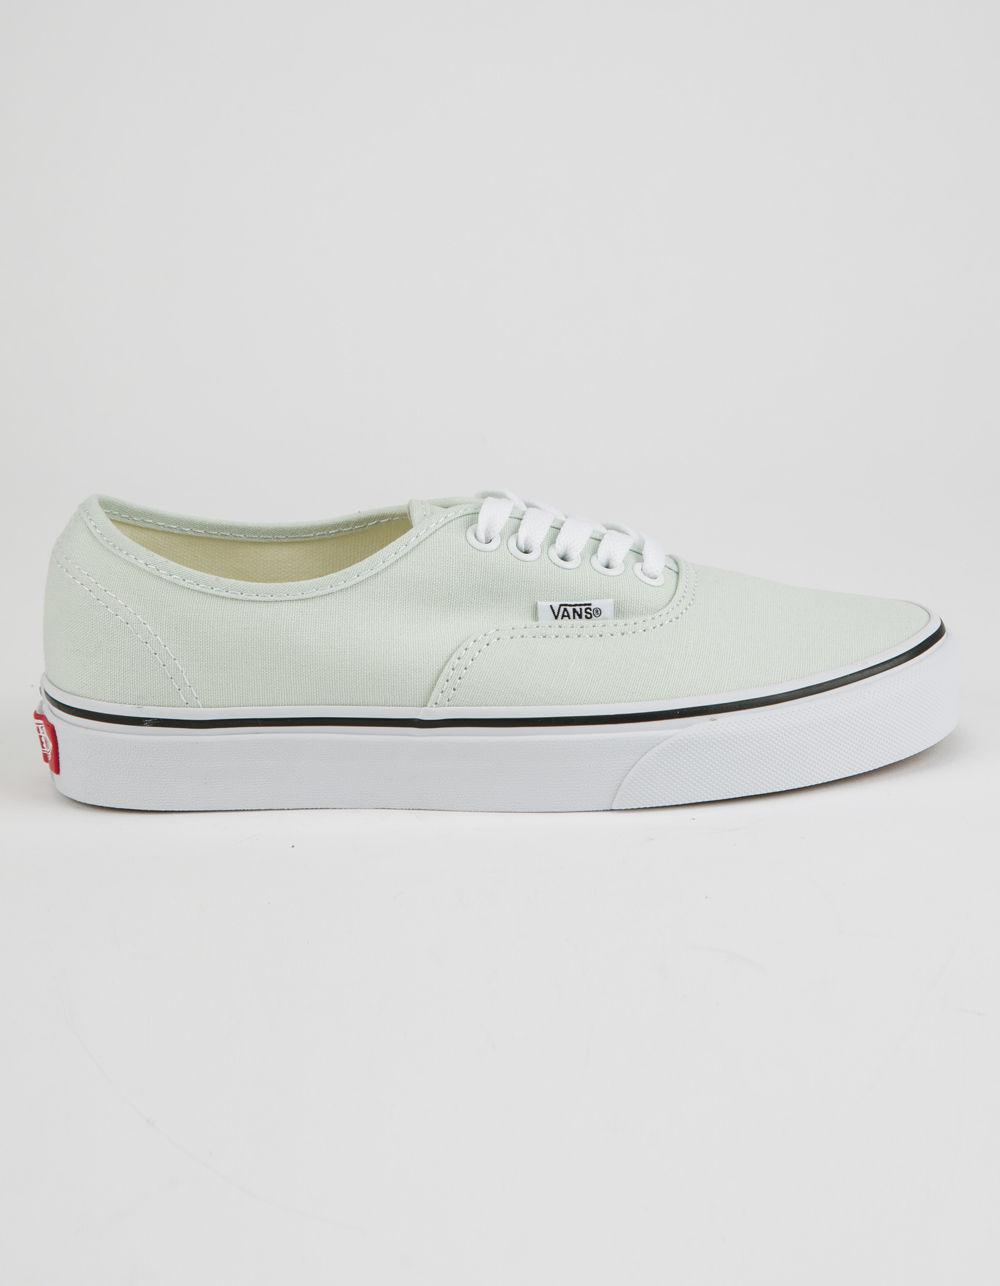 View Vans Authentic Lo Pro Ladies Plimsolls Womens Sports footwear Womens Trainers COLOUR-coral